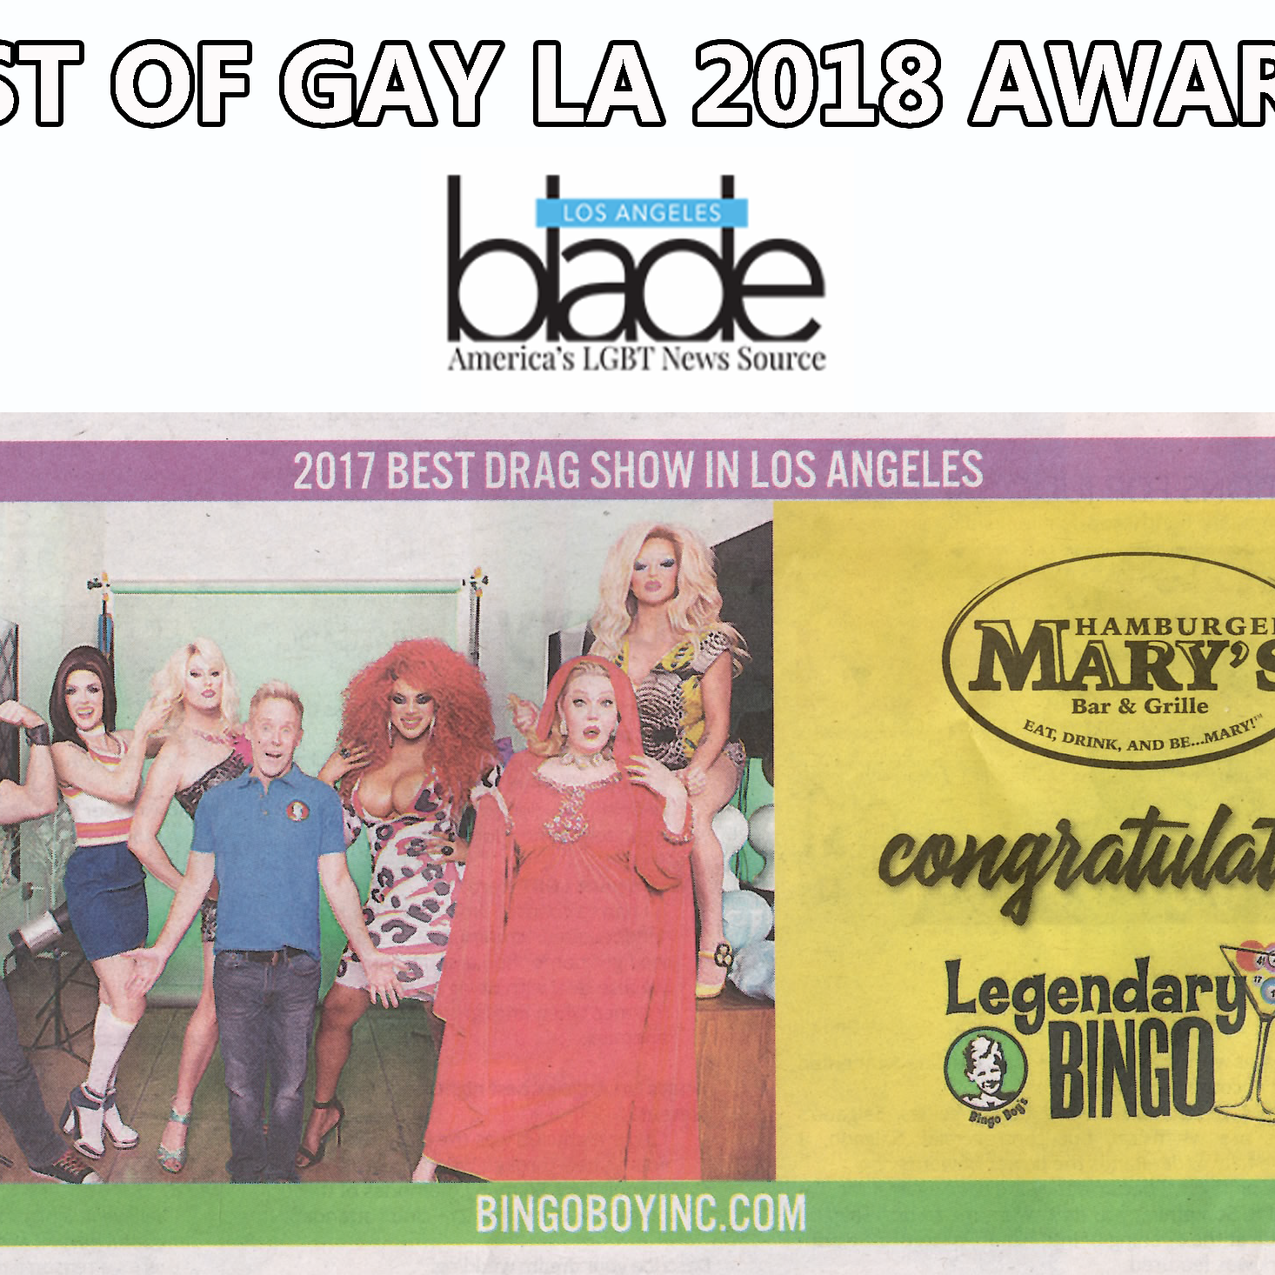 Blade awards best drag show 2018